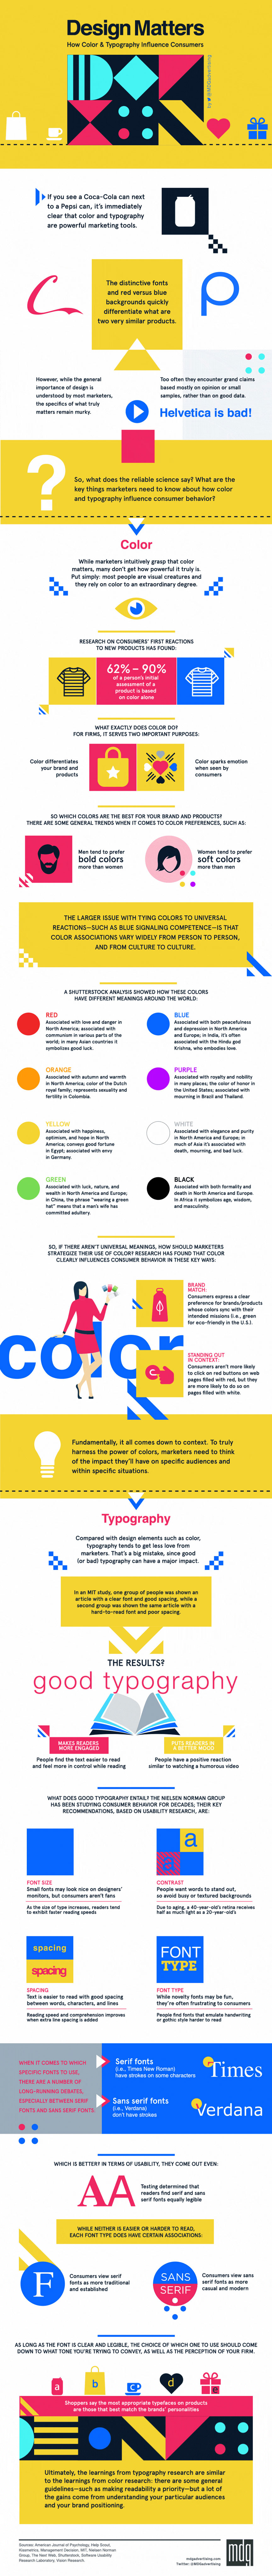 Design Matters: What Marketers Need to Know About Color and Typography [Infographic]